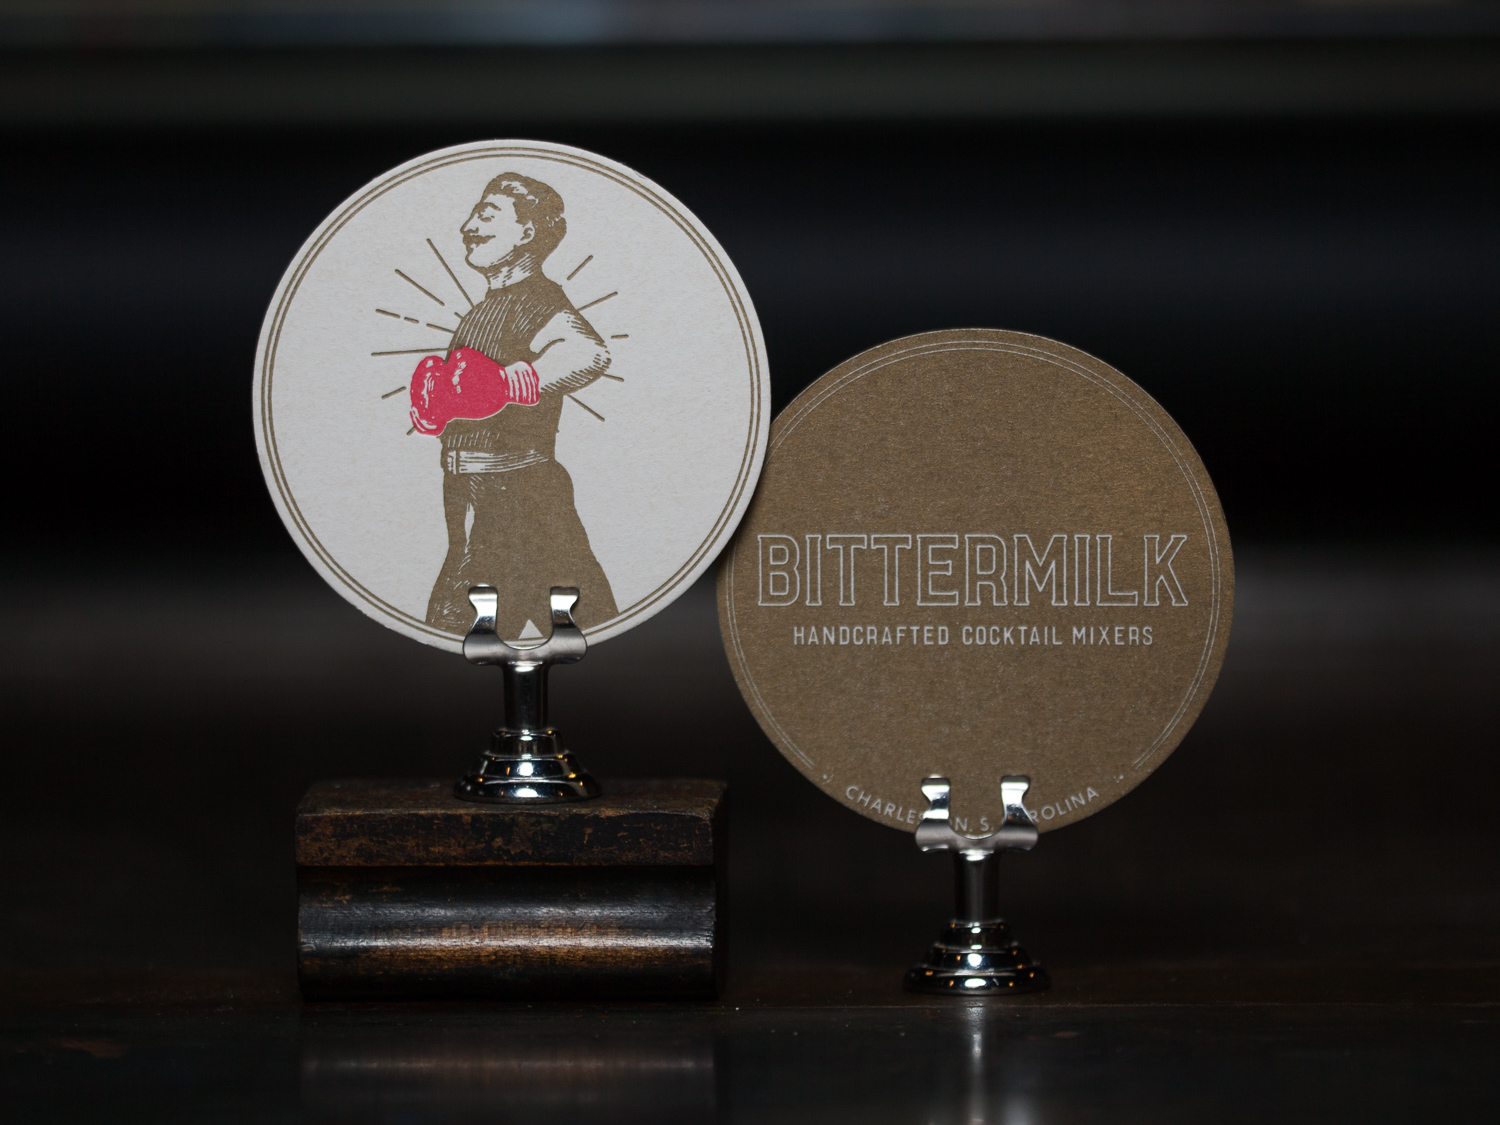 Customer:   Bittermilk   Artwork by:   Bittermilk   Paper Stock:  60pt coaster stock  Process:  2C Letterpress / 1C Letterpress  Press:  Heidelberg Windmill